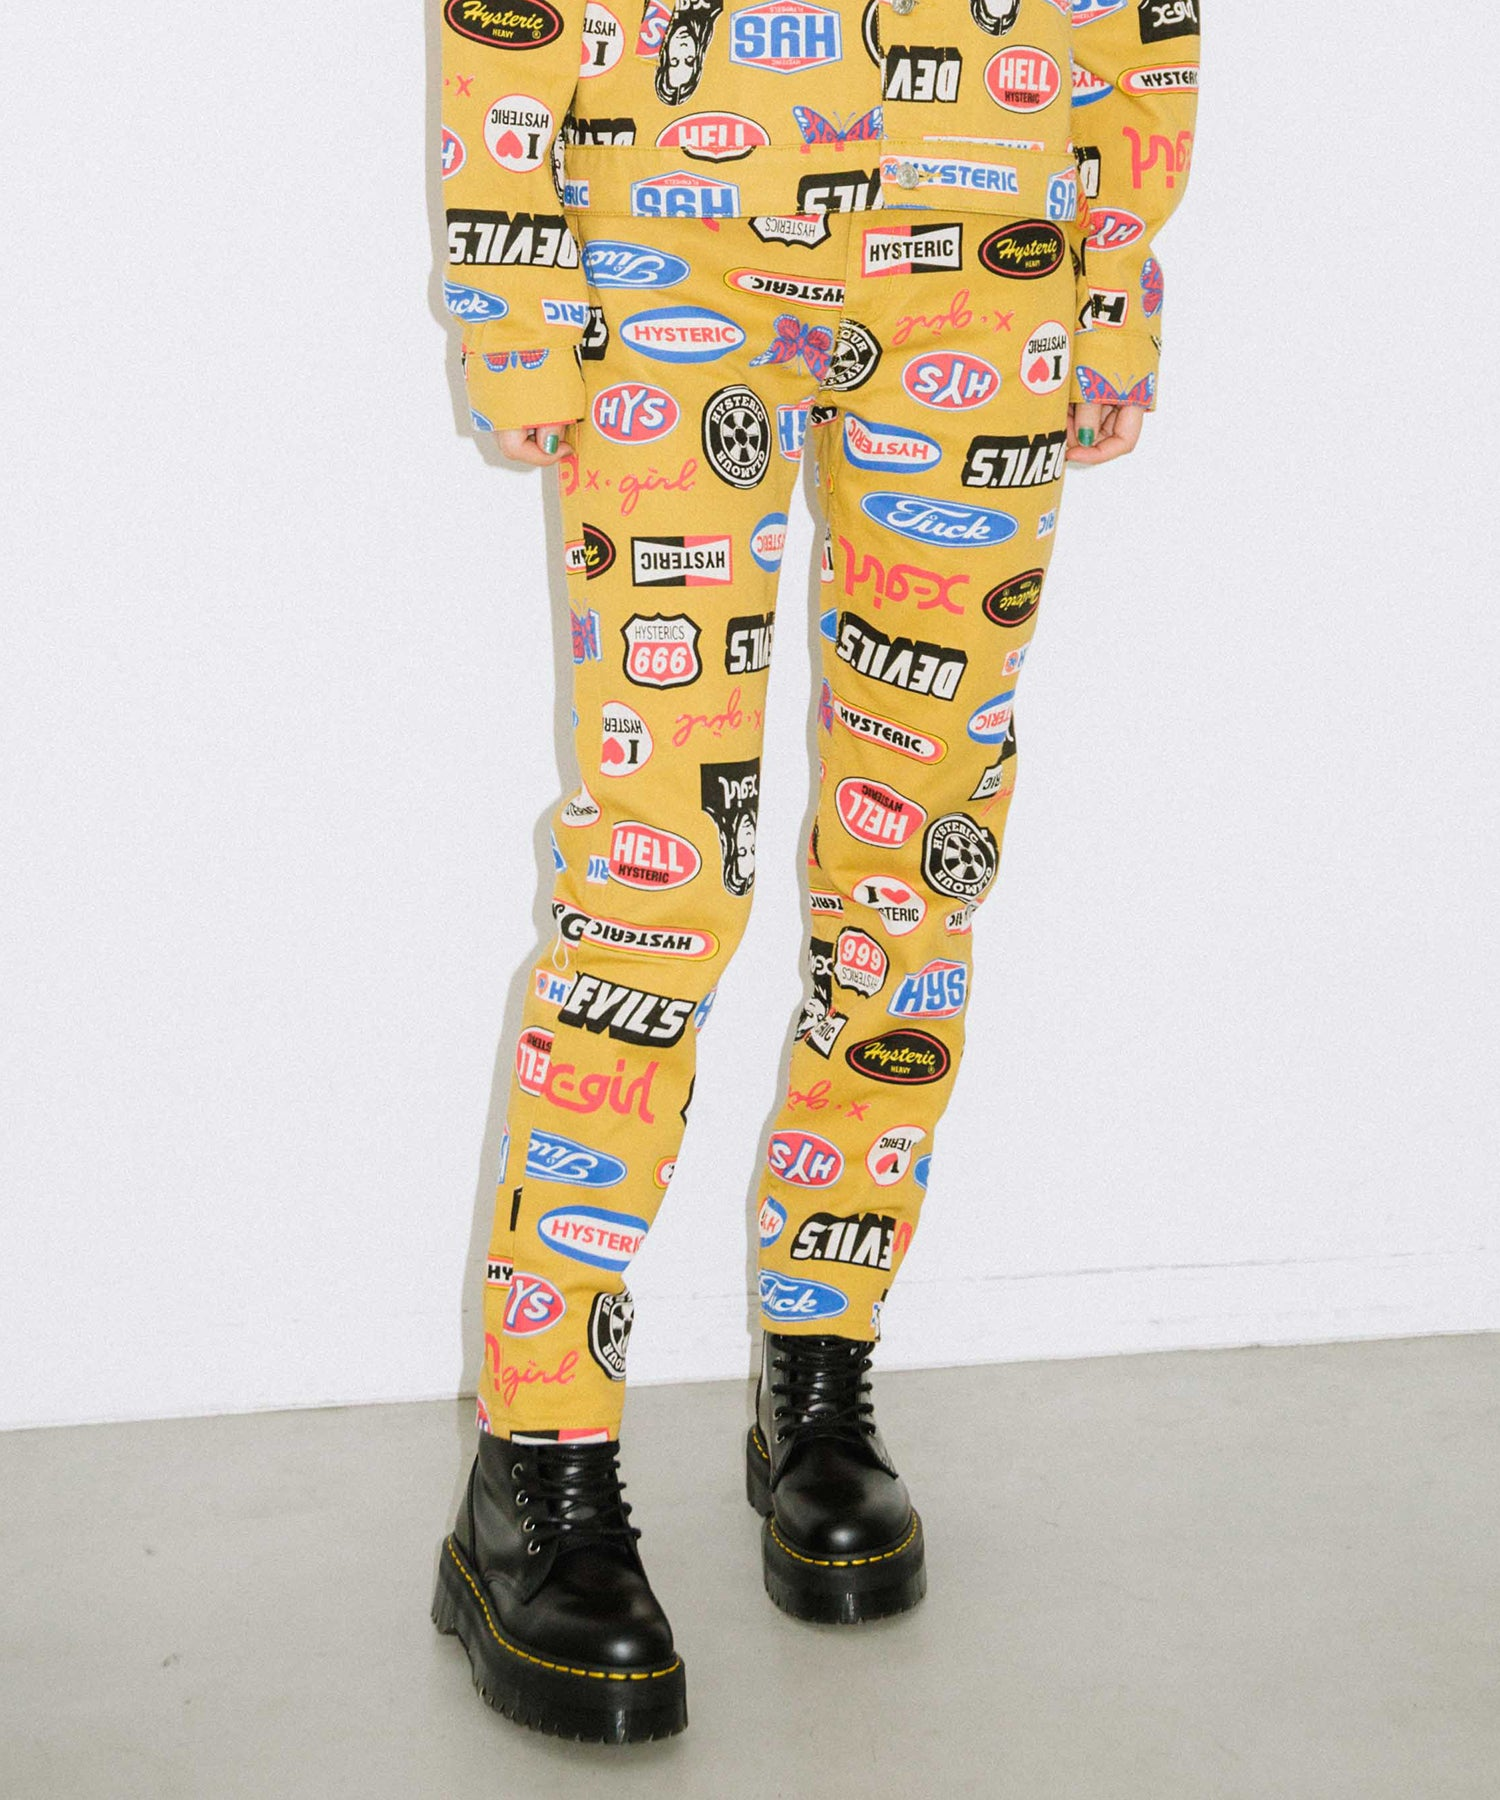 X-girl x HYSTERIC GLAMOUR ICONS 5-POCKET PANTS, PANTS, X-Girl